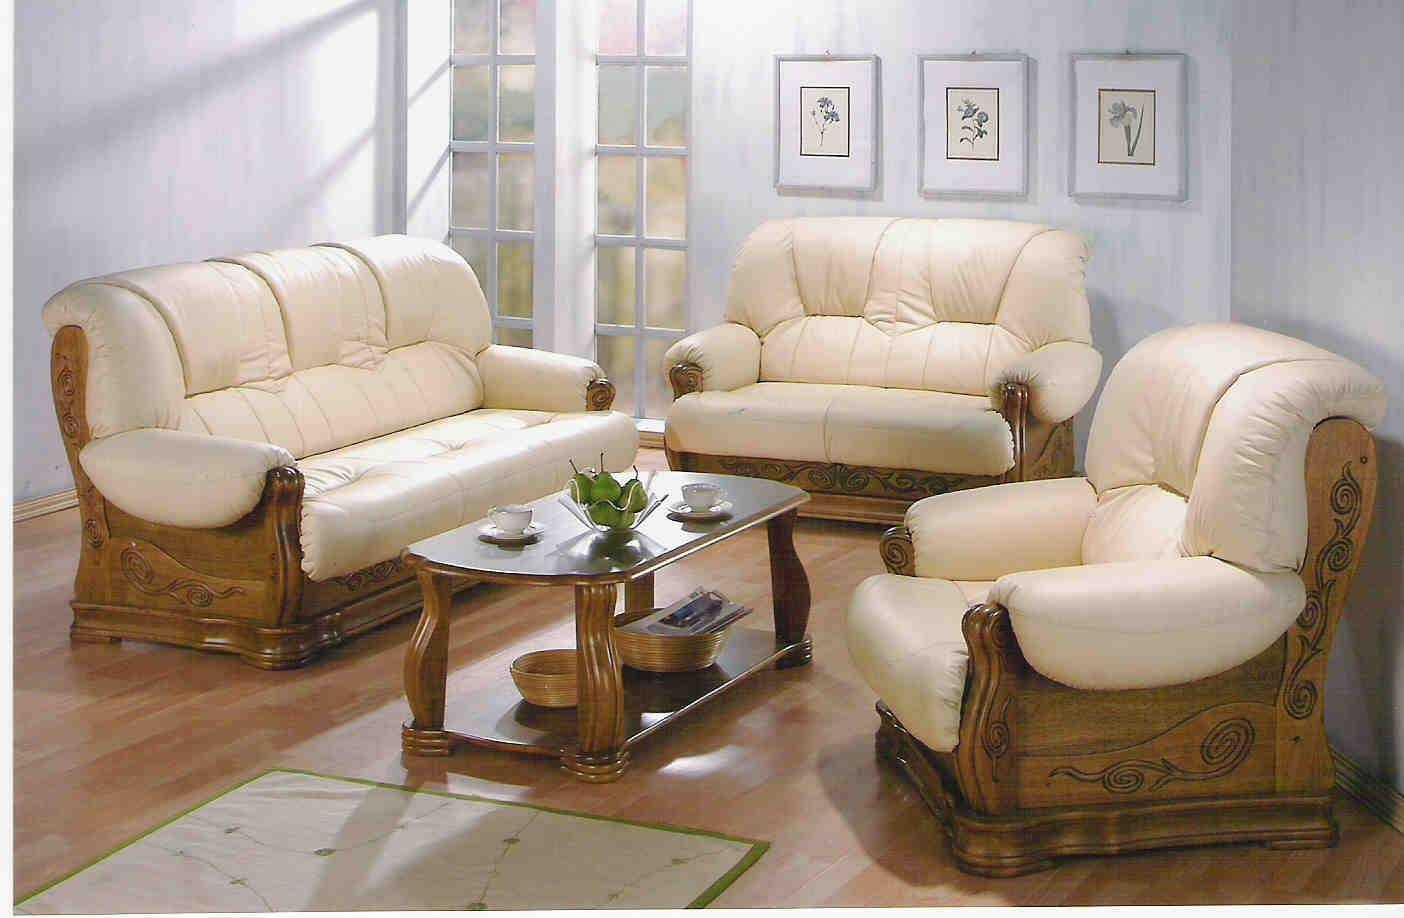 Cheap Sectional Couches | Home Design Ideas in Cool Cheap Sofas (Image 4 of 30)